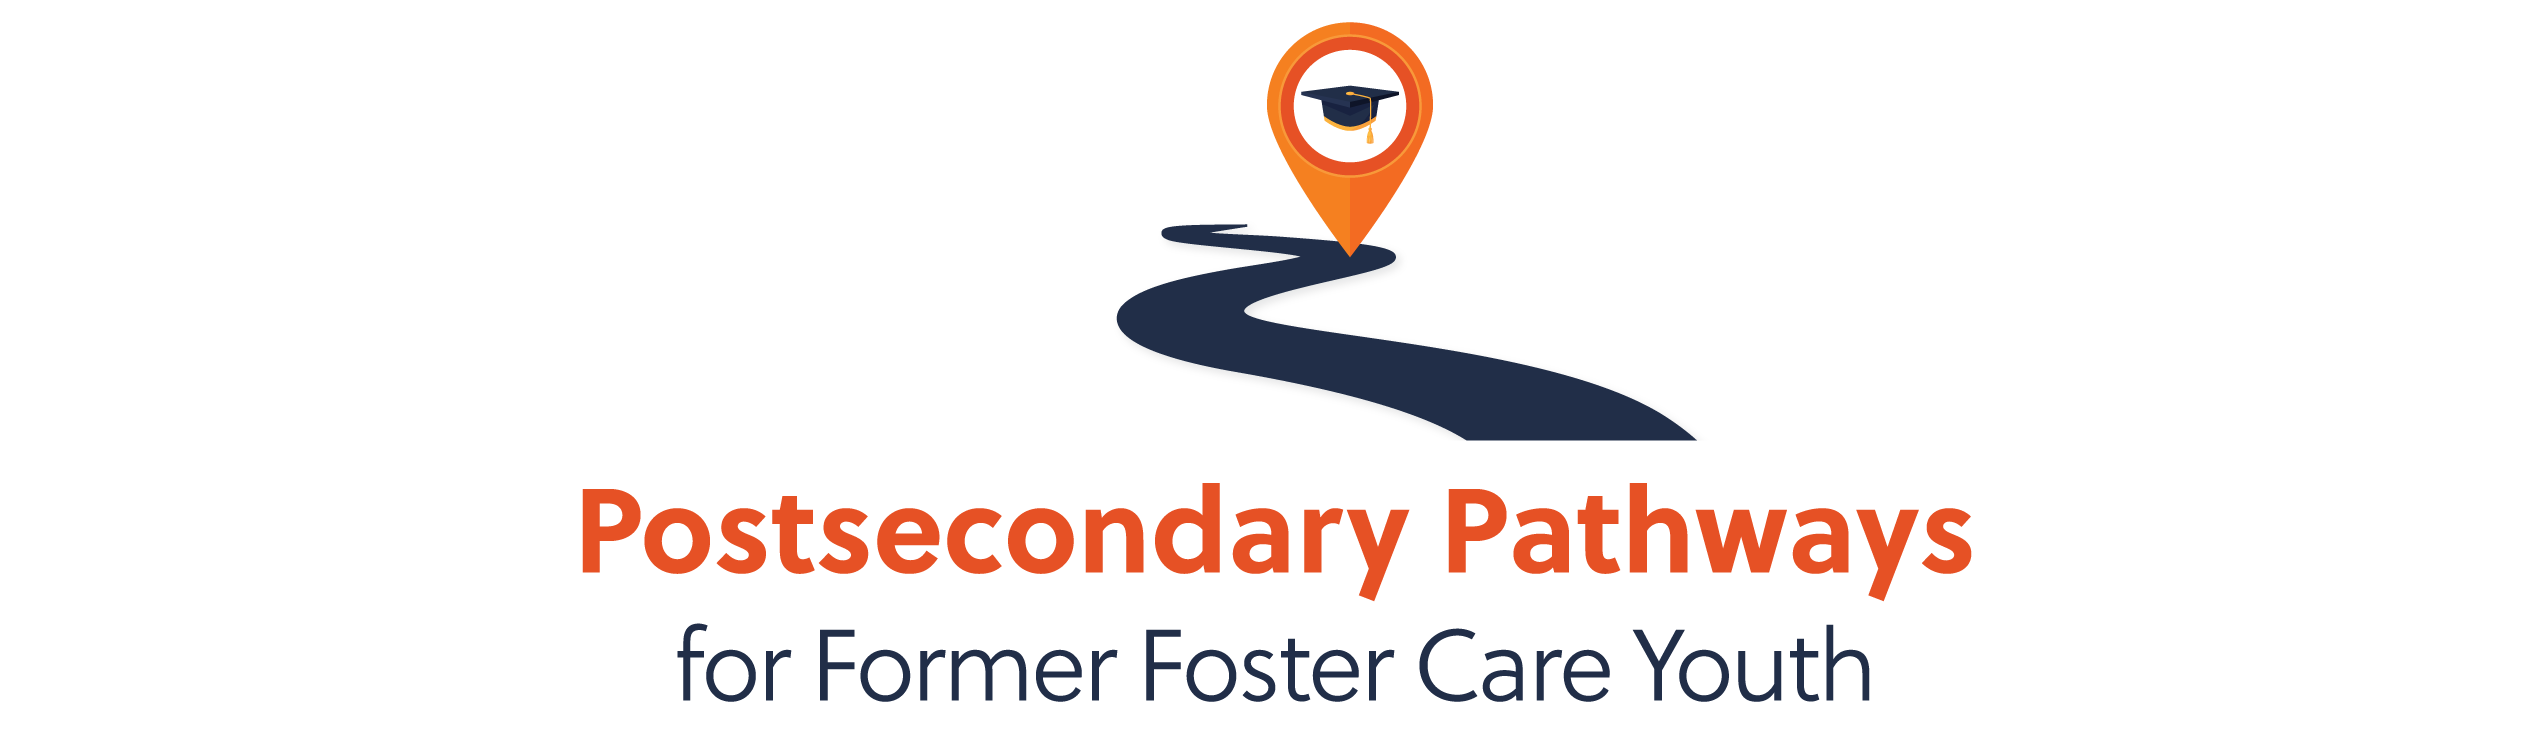 Postsecondary Pathways for Former Foster Care Youth